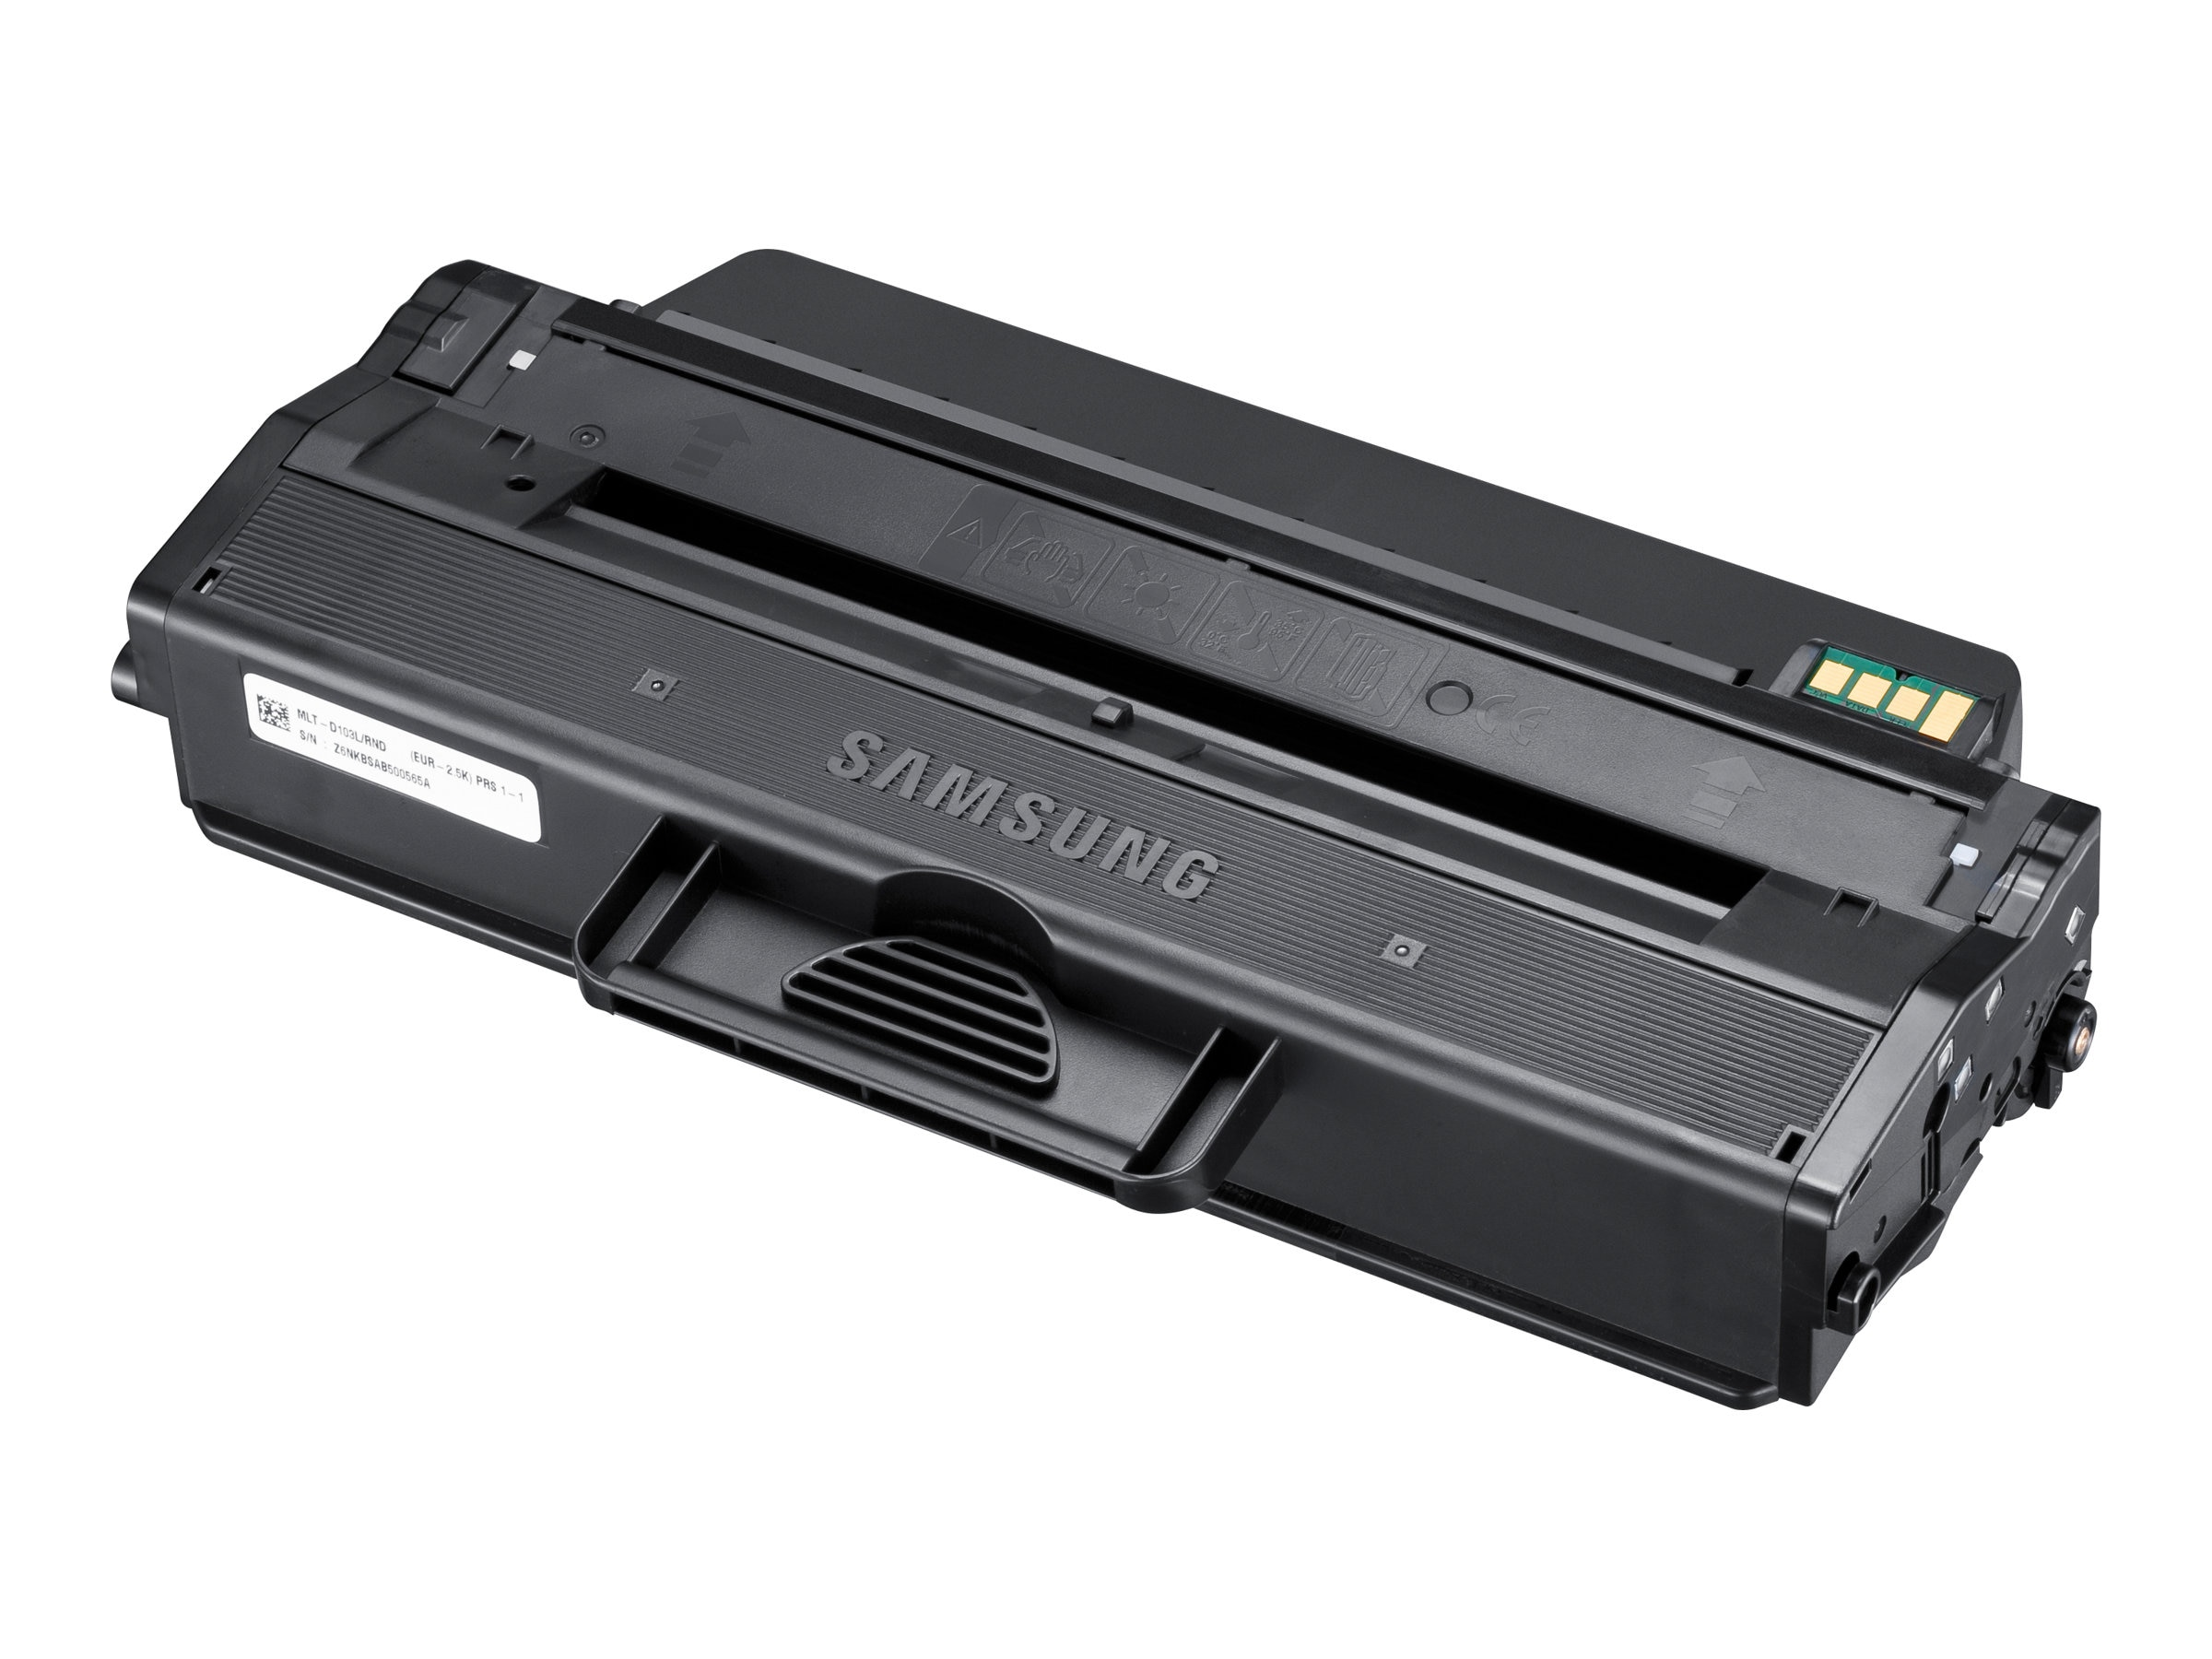 Samsung Black High Yield Toner Cartridge for ML-2950ND & SCX-4725FN